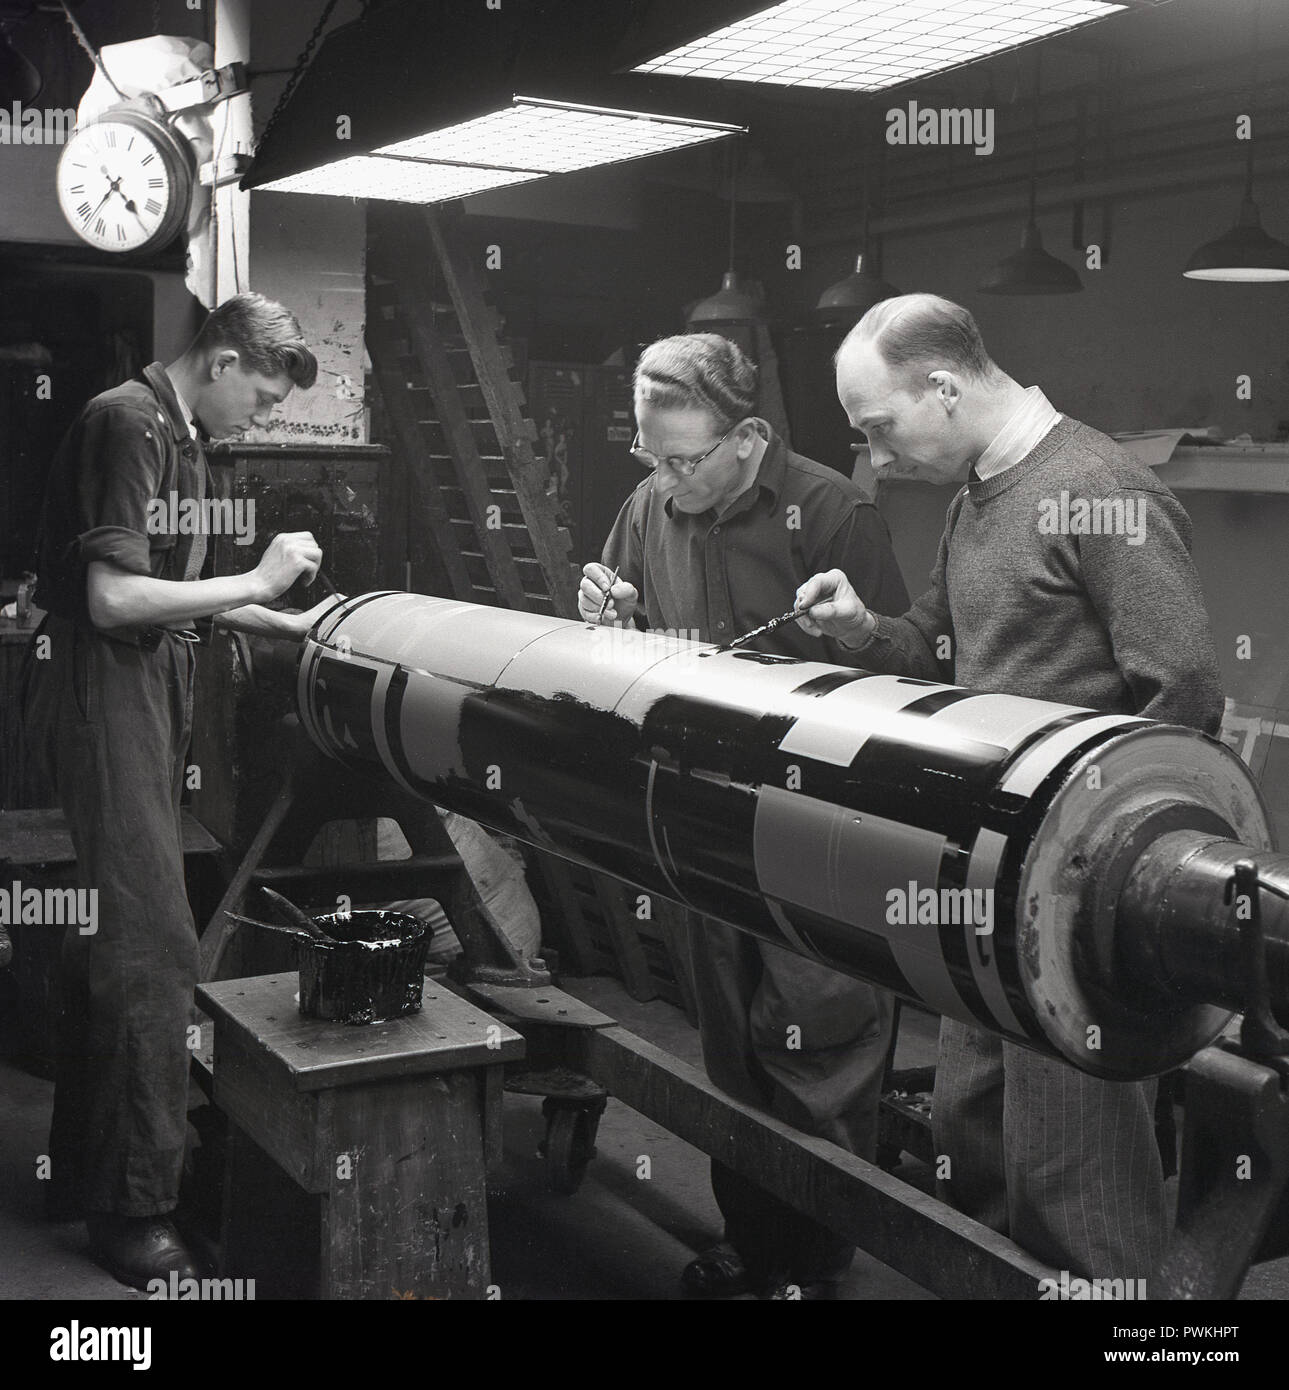 1050s, HWV, magazine printers, two male workers and young male apprentice painting images with black ink onto a metal cyclinder before printing, Engalnd, UK> - Stock Image